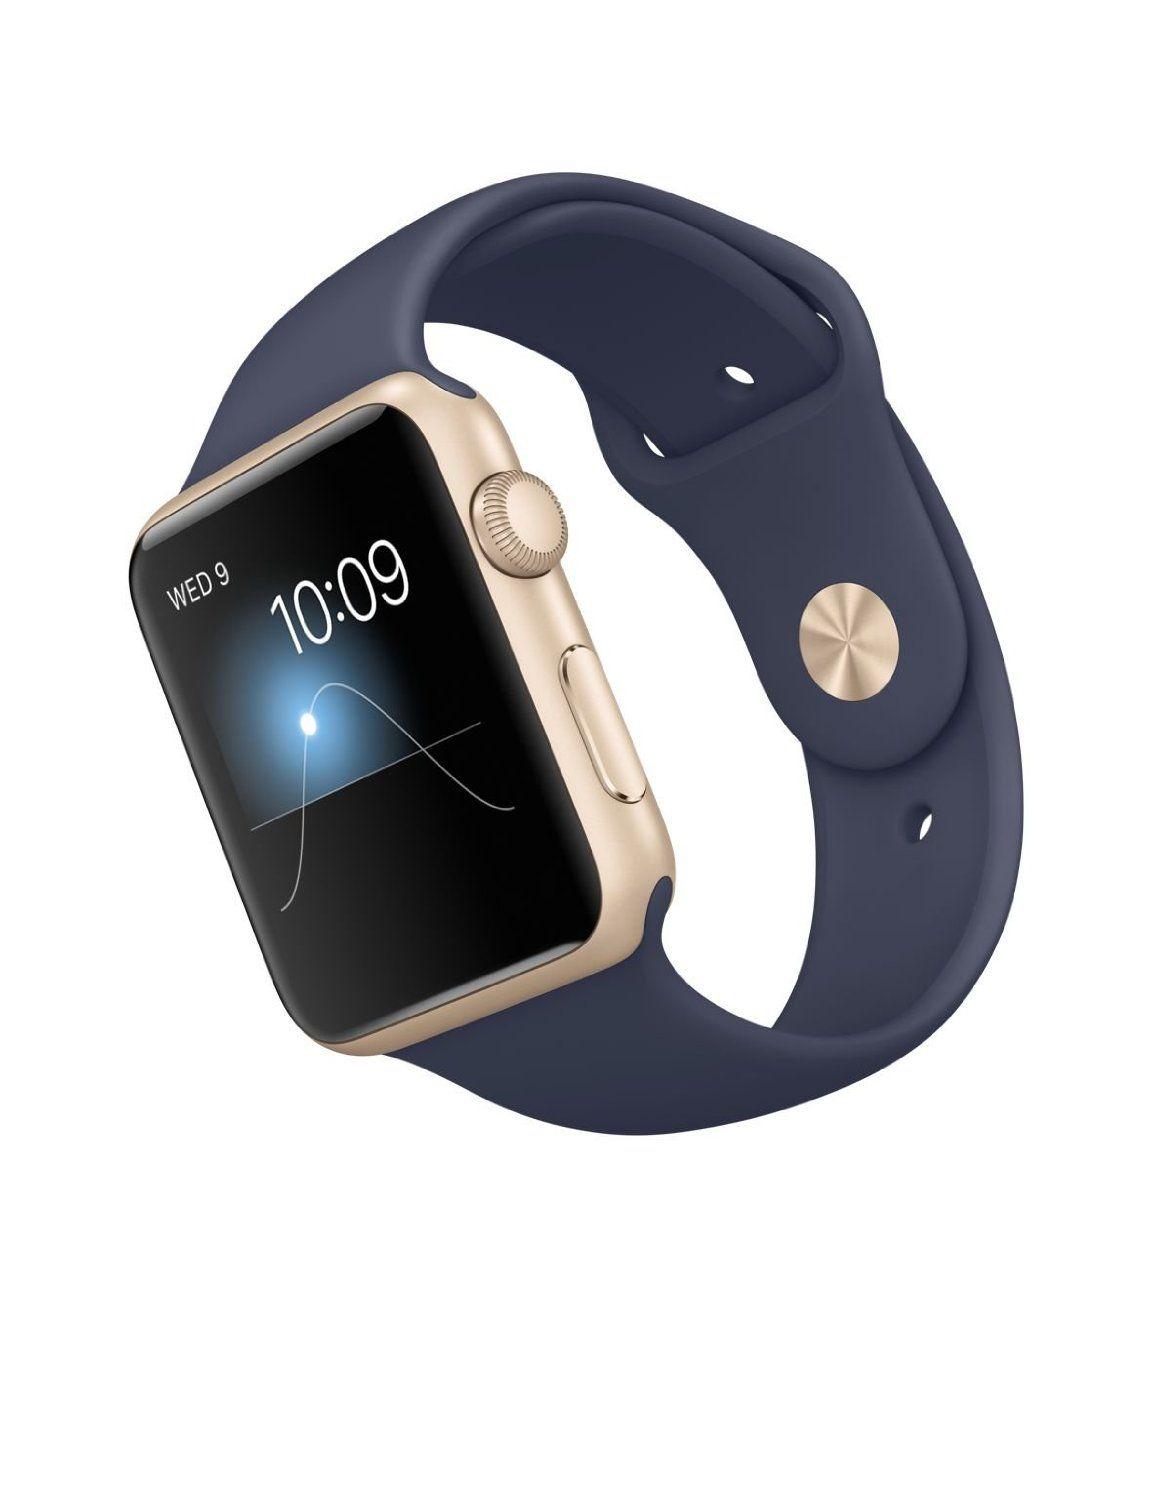 huge selection of f8d50 84835 Amazon.com: Apple Watch Sport Gold Aluminum Case with Band, Midnight ...